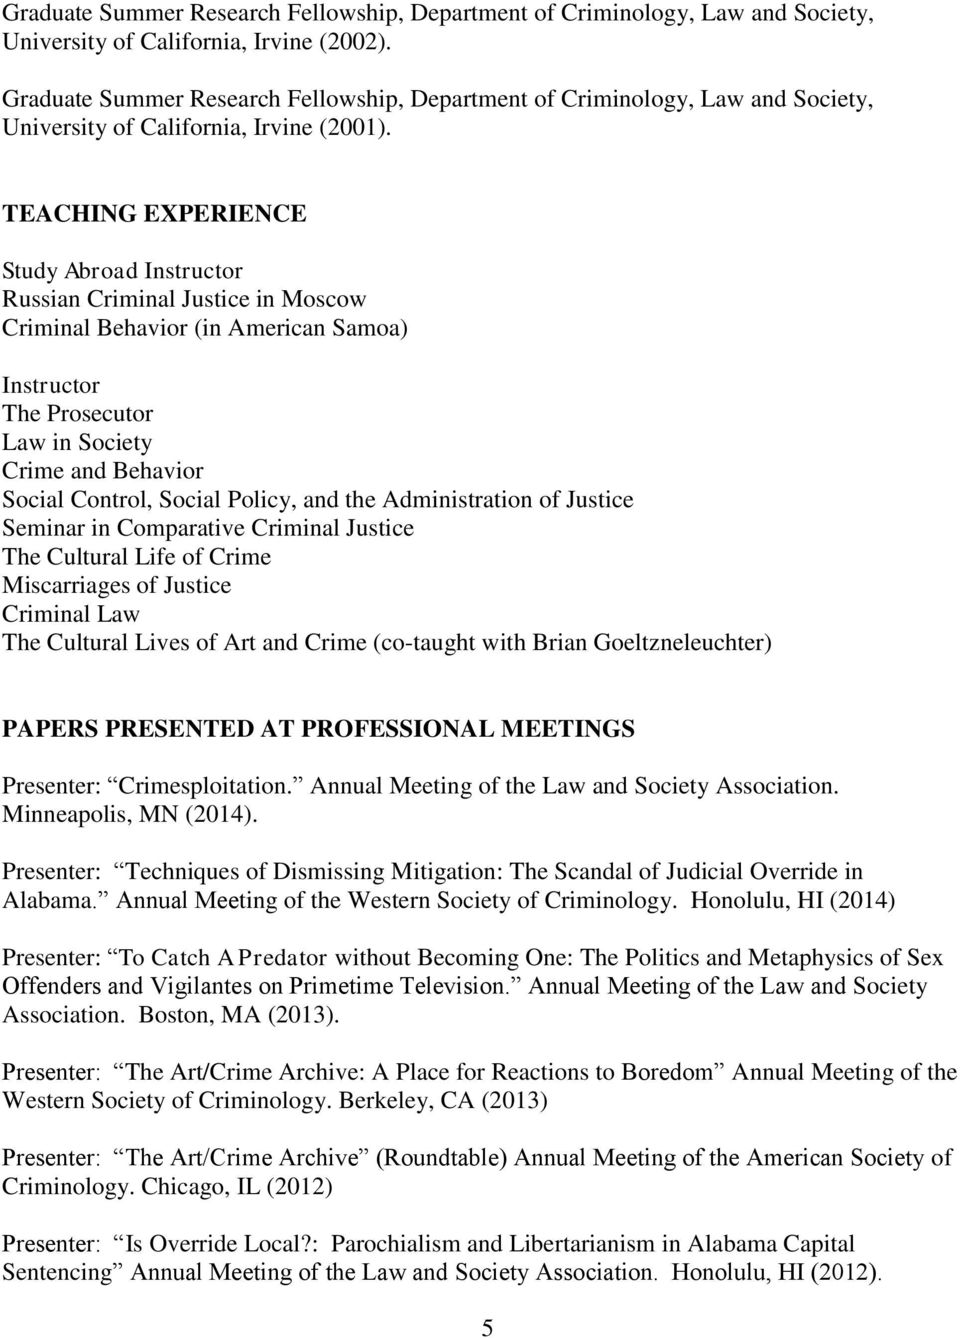 Policy, and the Administration of Justice Seminar in Comparative Criminal Justice The Cultural Life of Crime Miscarriages of Justice Criminal Law The Cultural Lives of Art and Crime (co-taught with